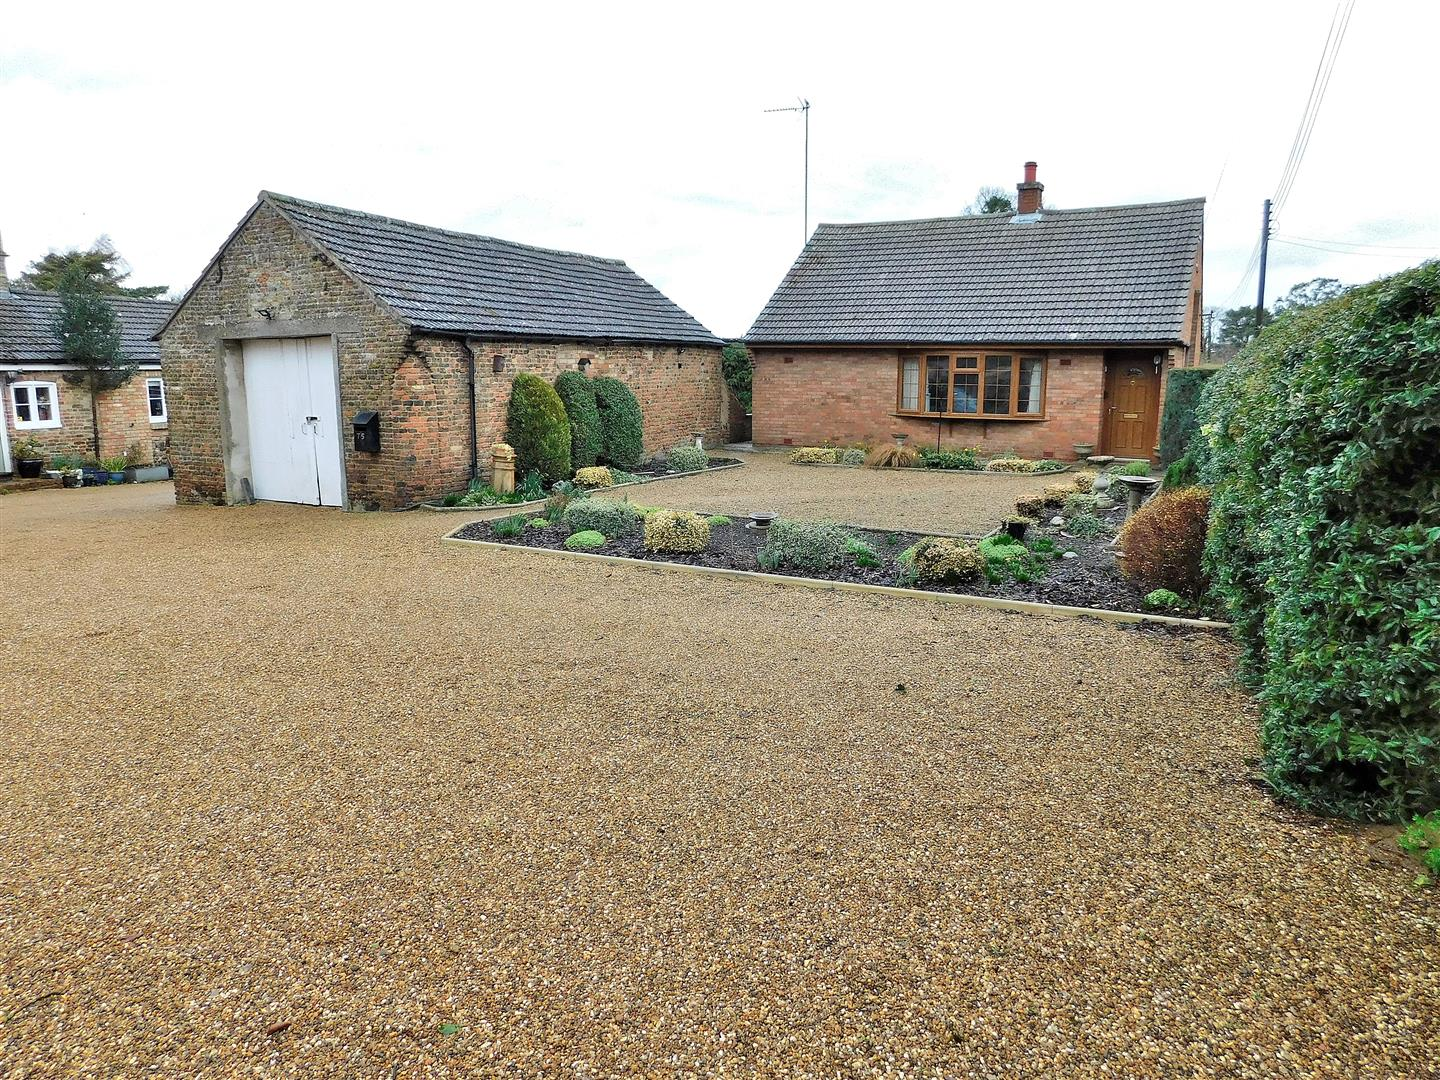 2 bed detached bungalow for sale in King's Lynn, PE34 3QG 0